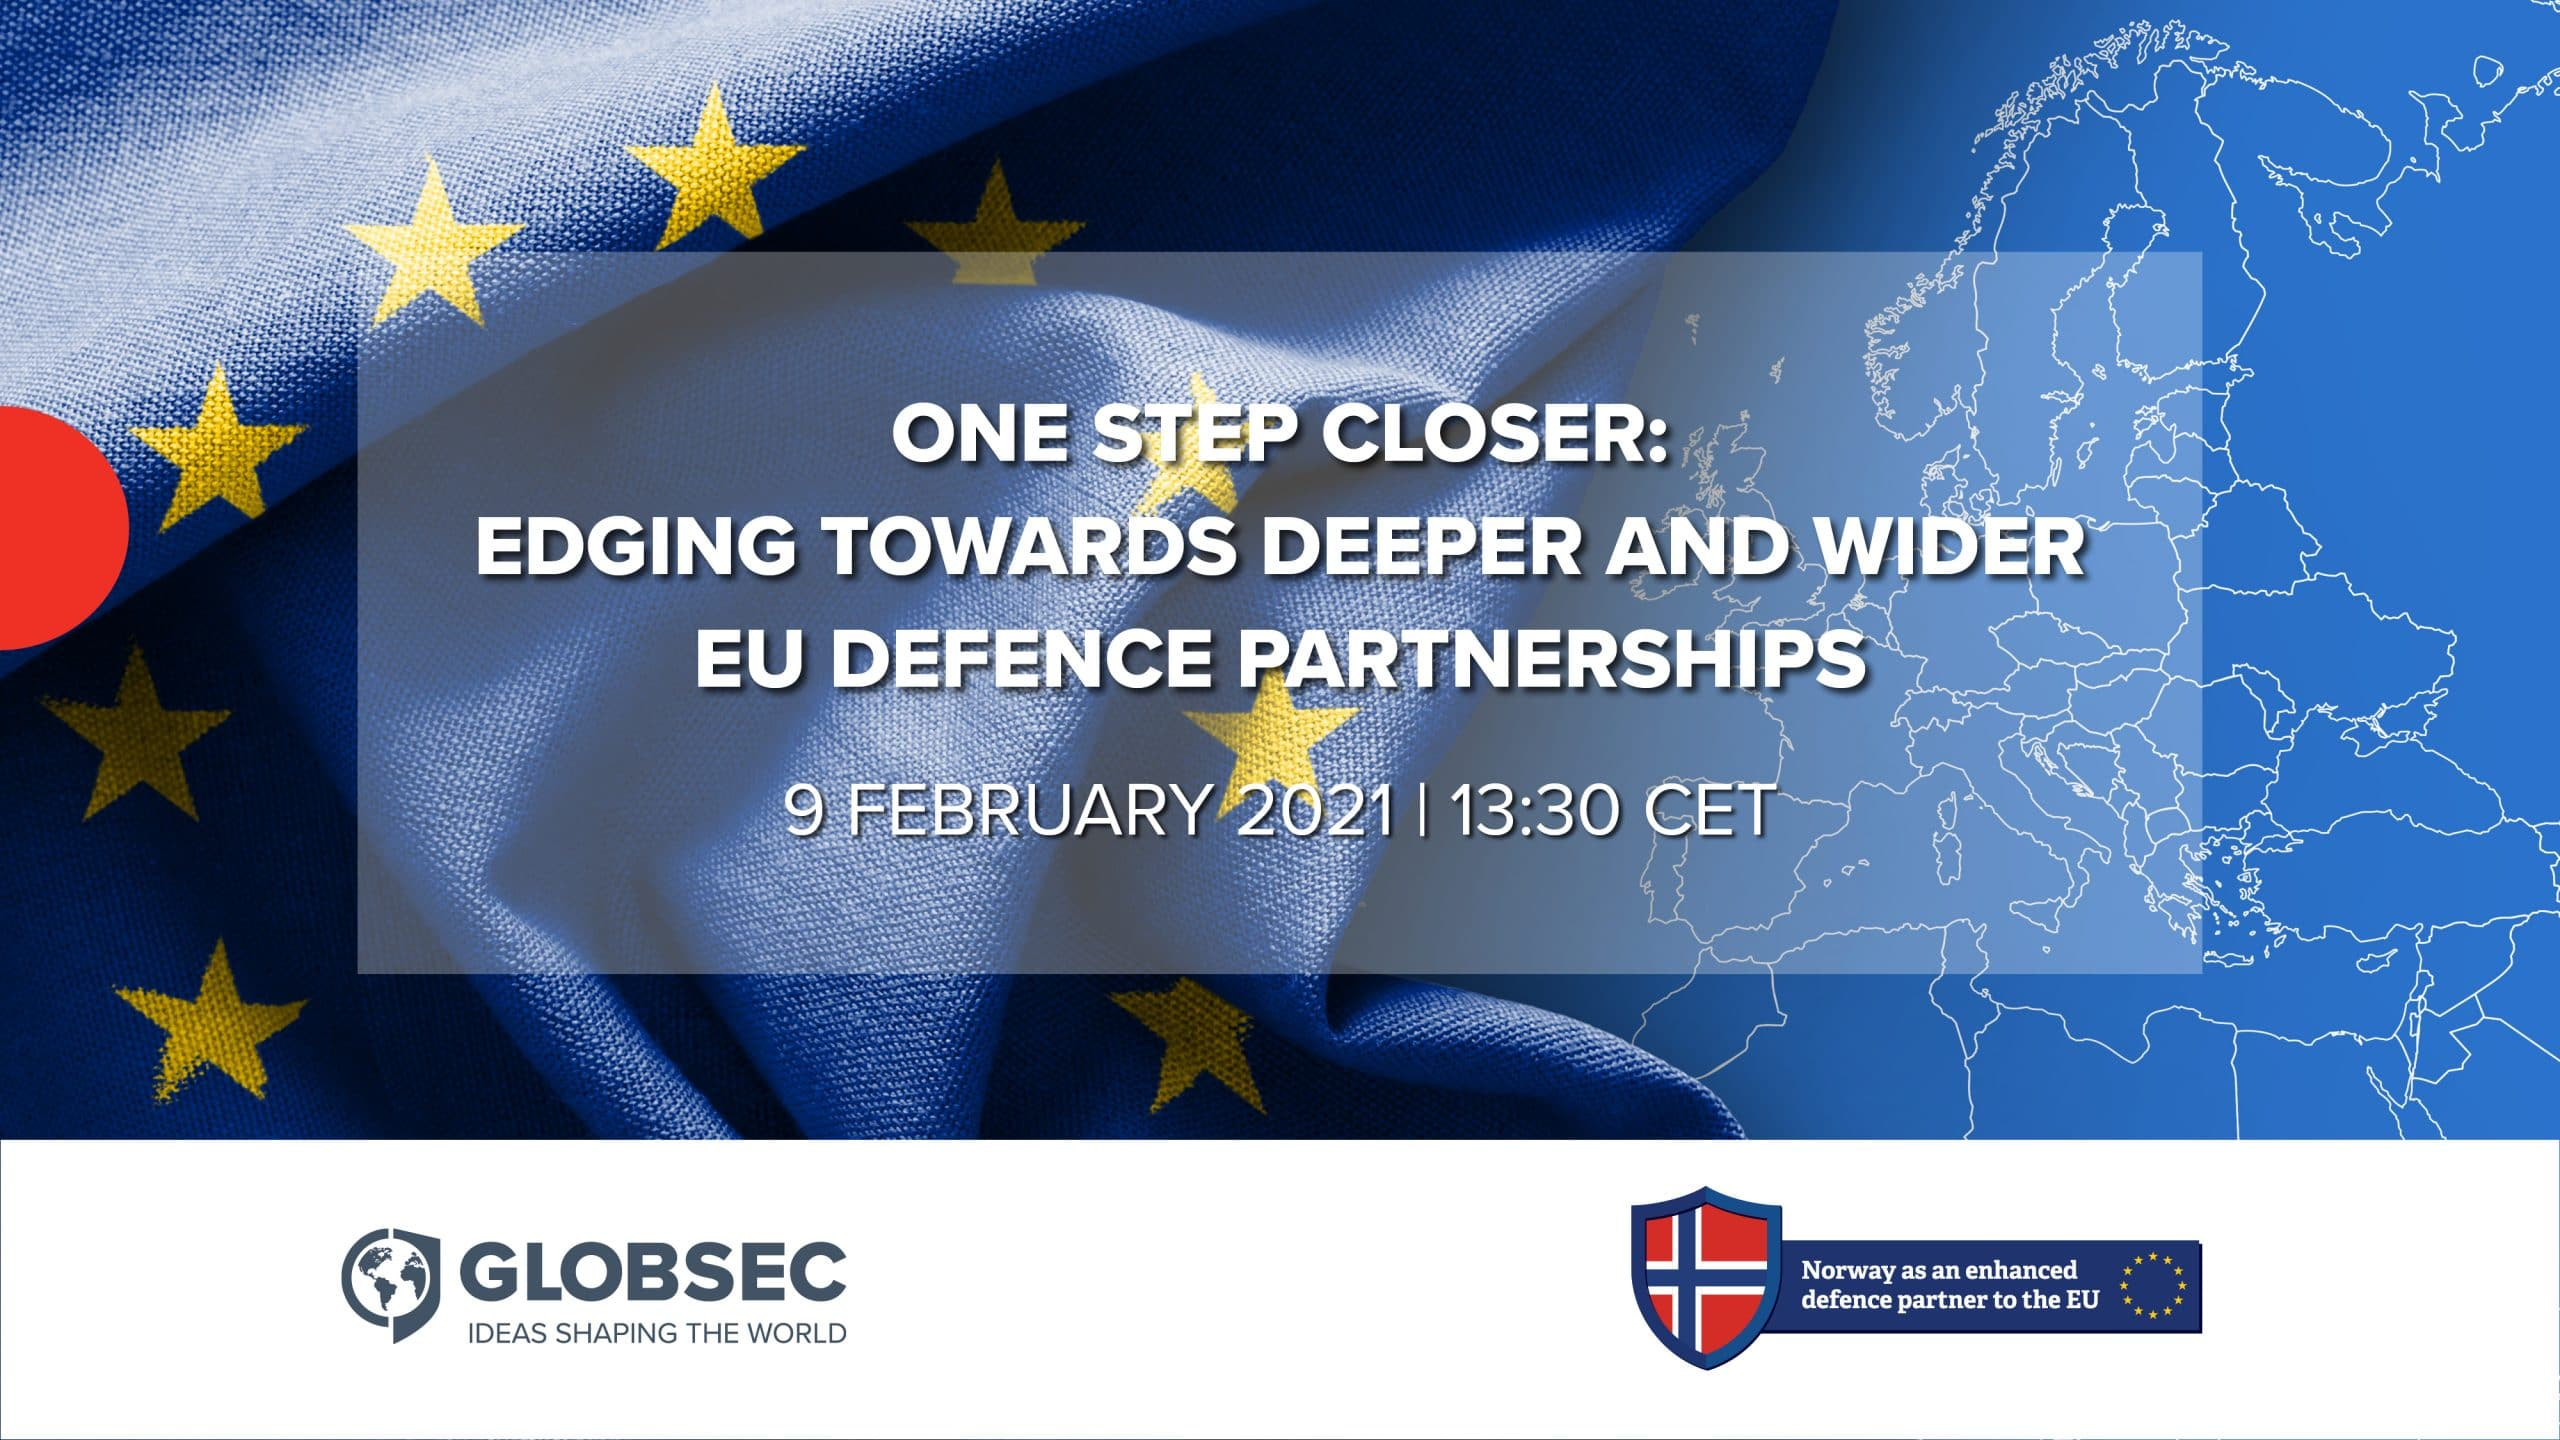 One Step Closer: Edging Towards Deeper and Wider EU Defence Partnerships